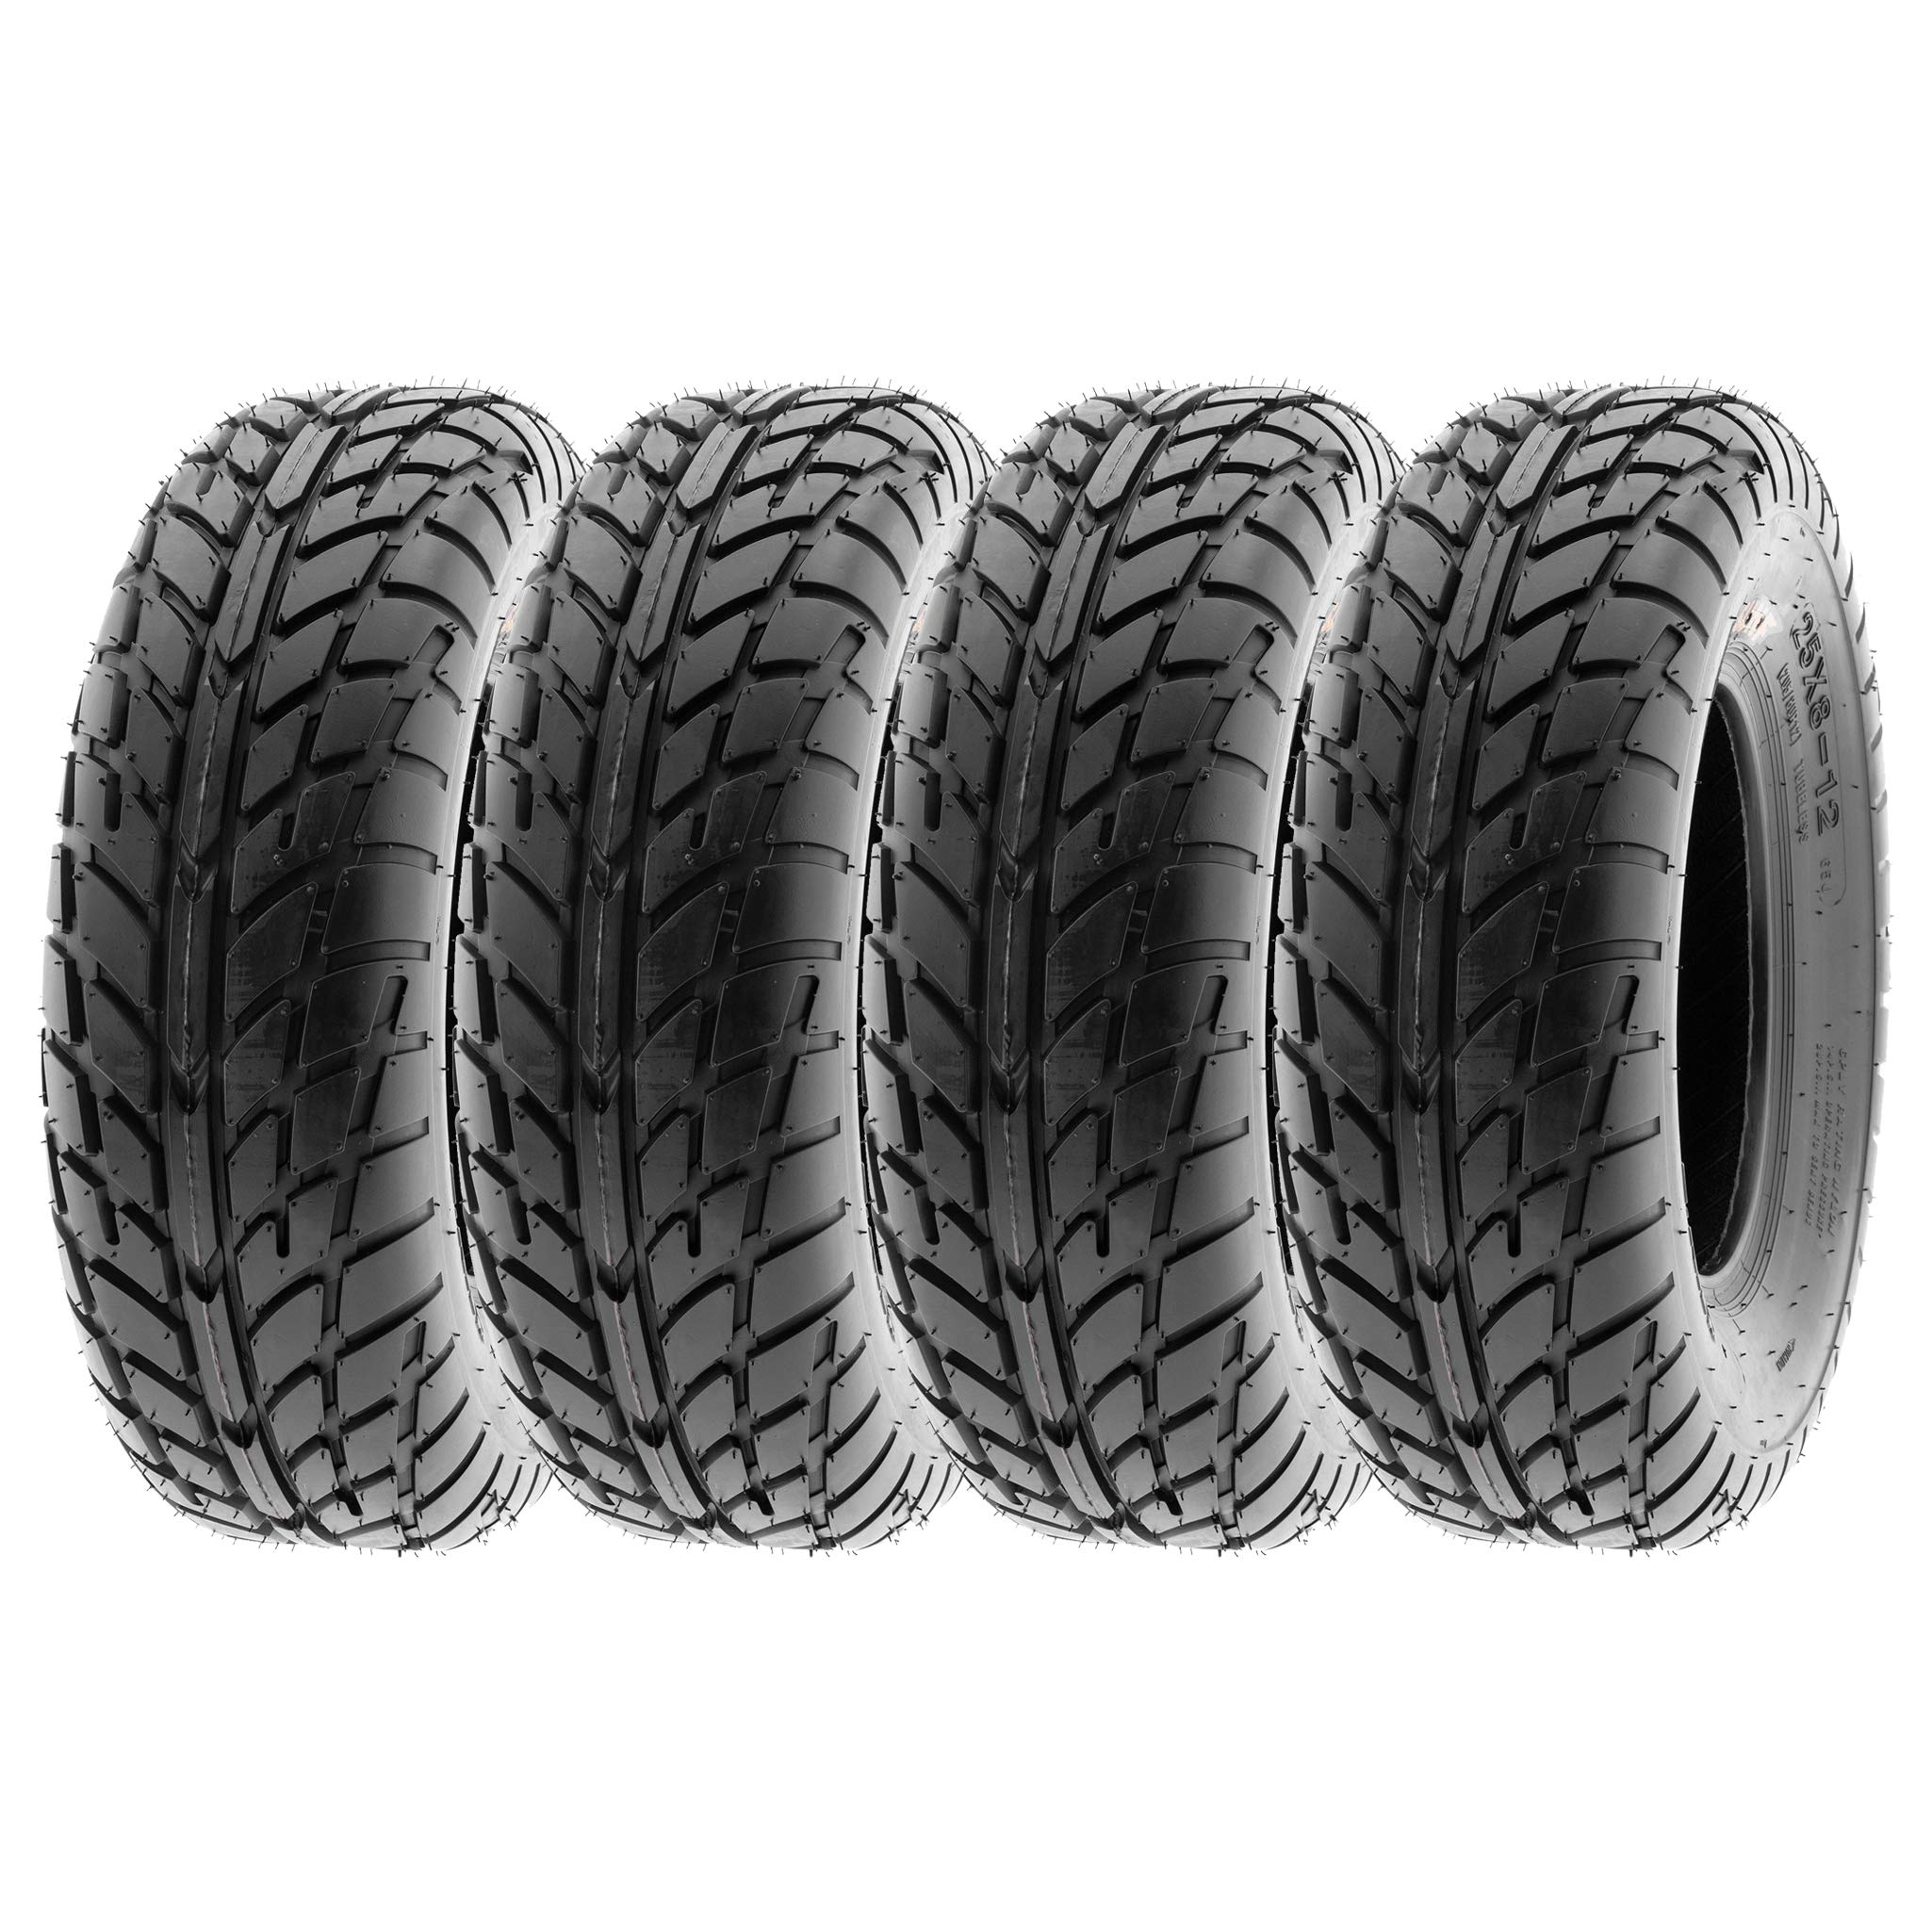 SunF Sport Race Replacement ATV UTV 6 Ply Tires 25x8-12 25x8x12 Tubeless A021, [Set of 4] by SUNF